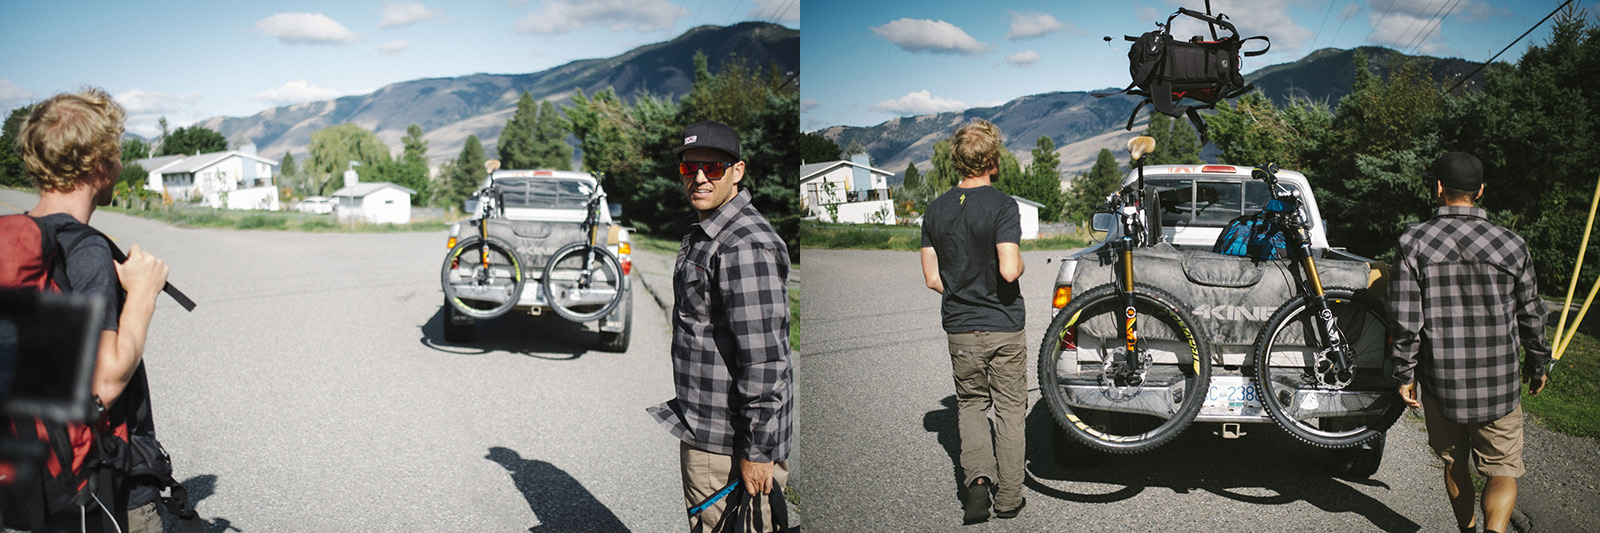 andrew shandro and matt hunter in revelstoke british columbia